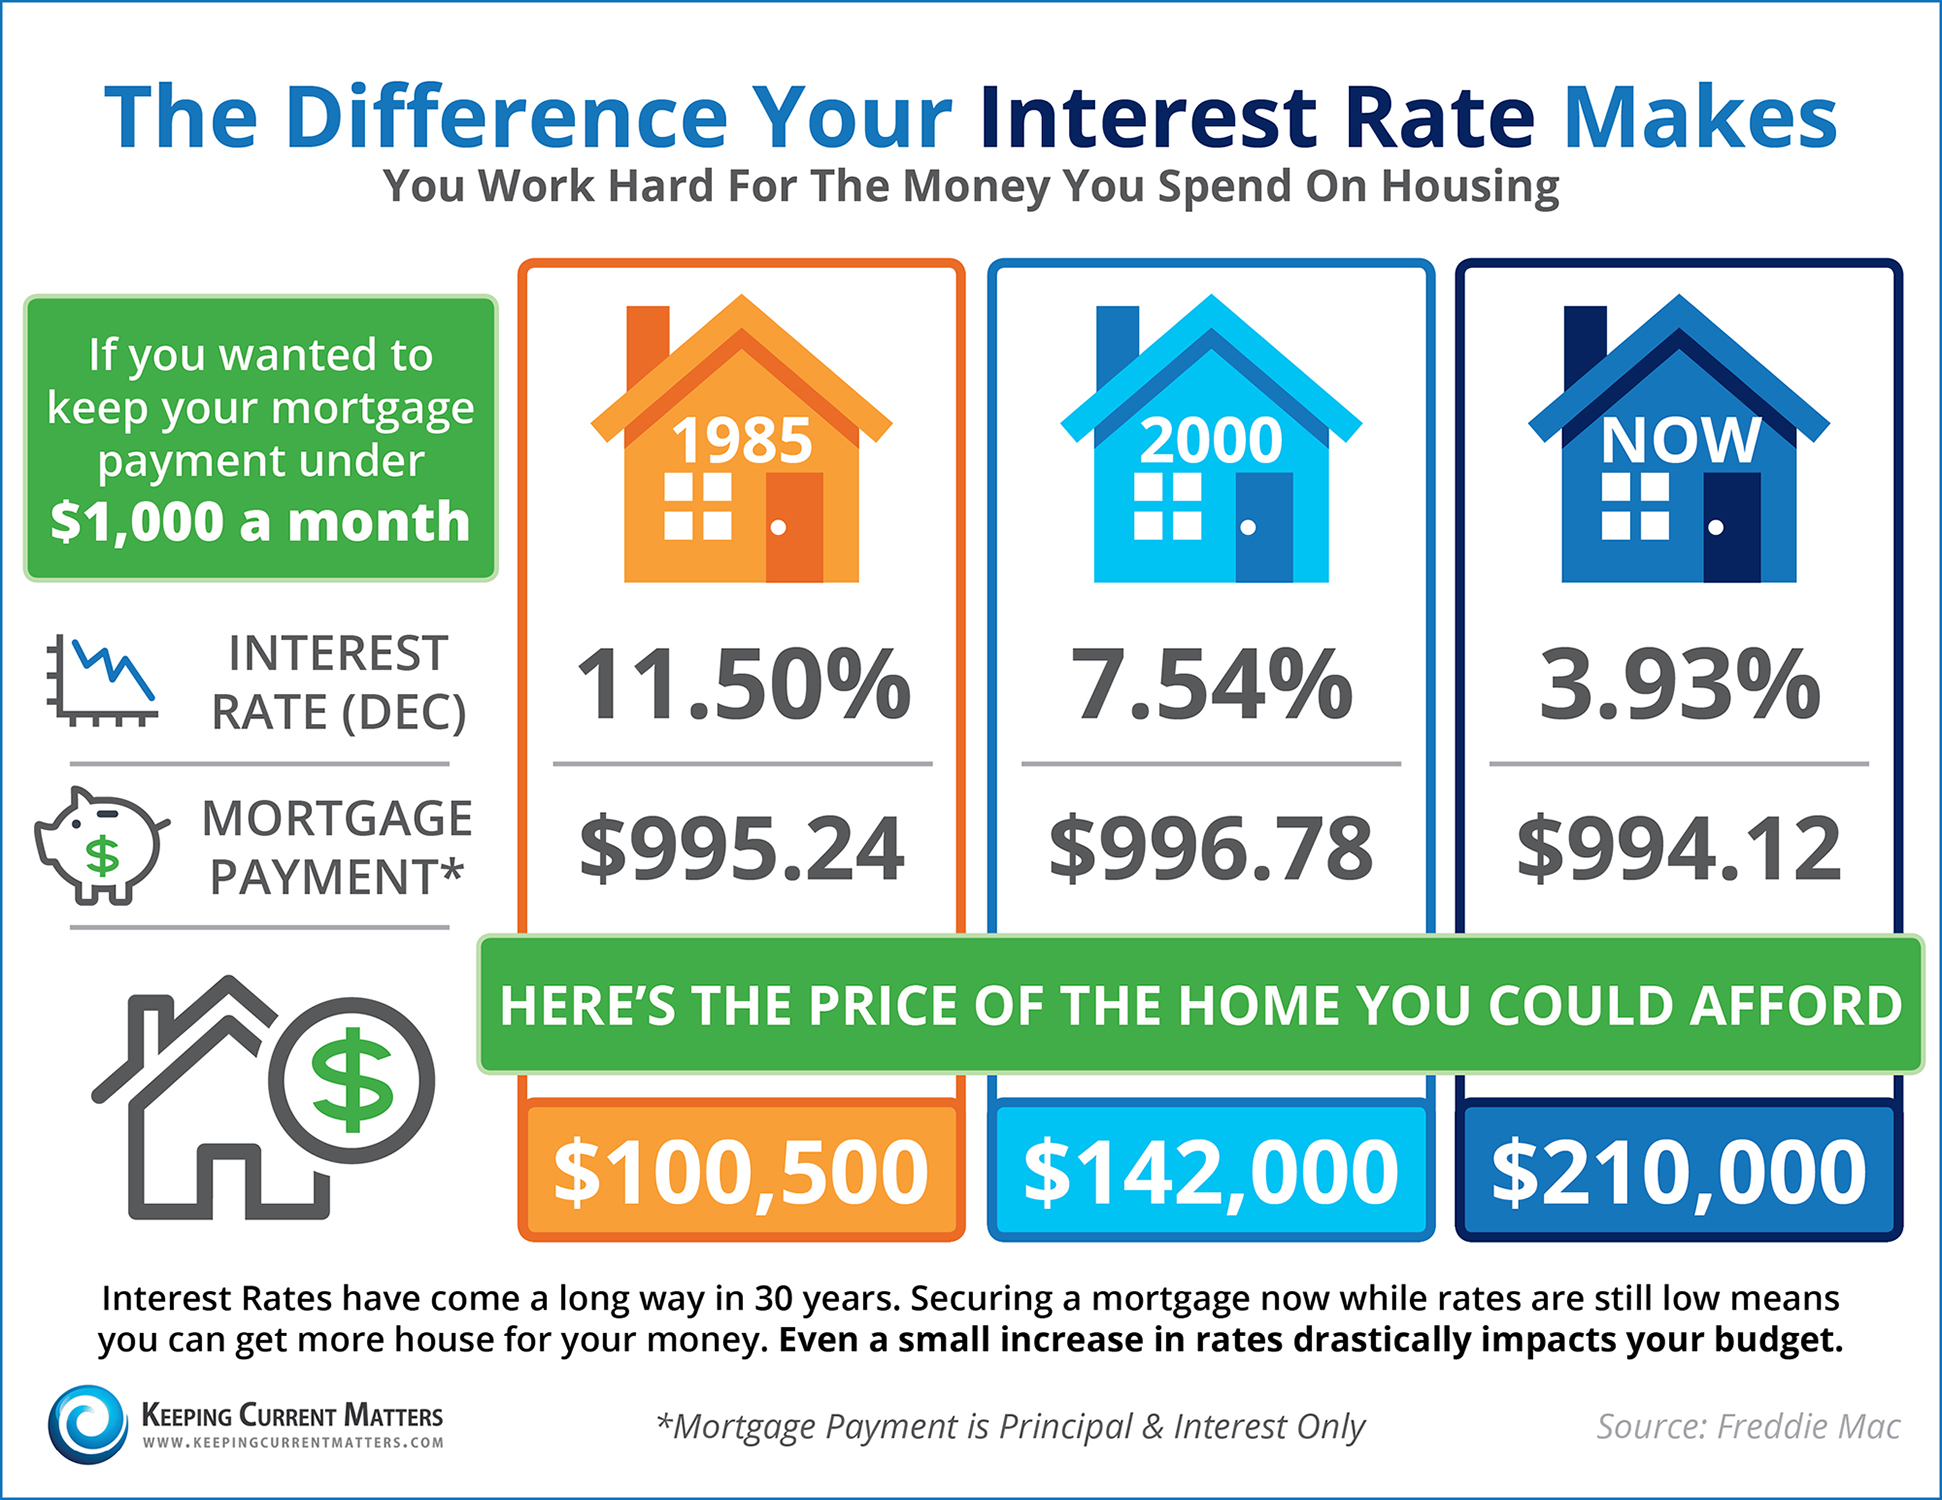 How Much Can a Small Jump in Interest Rate Affect Me??